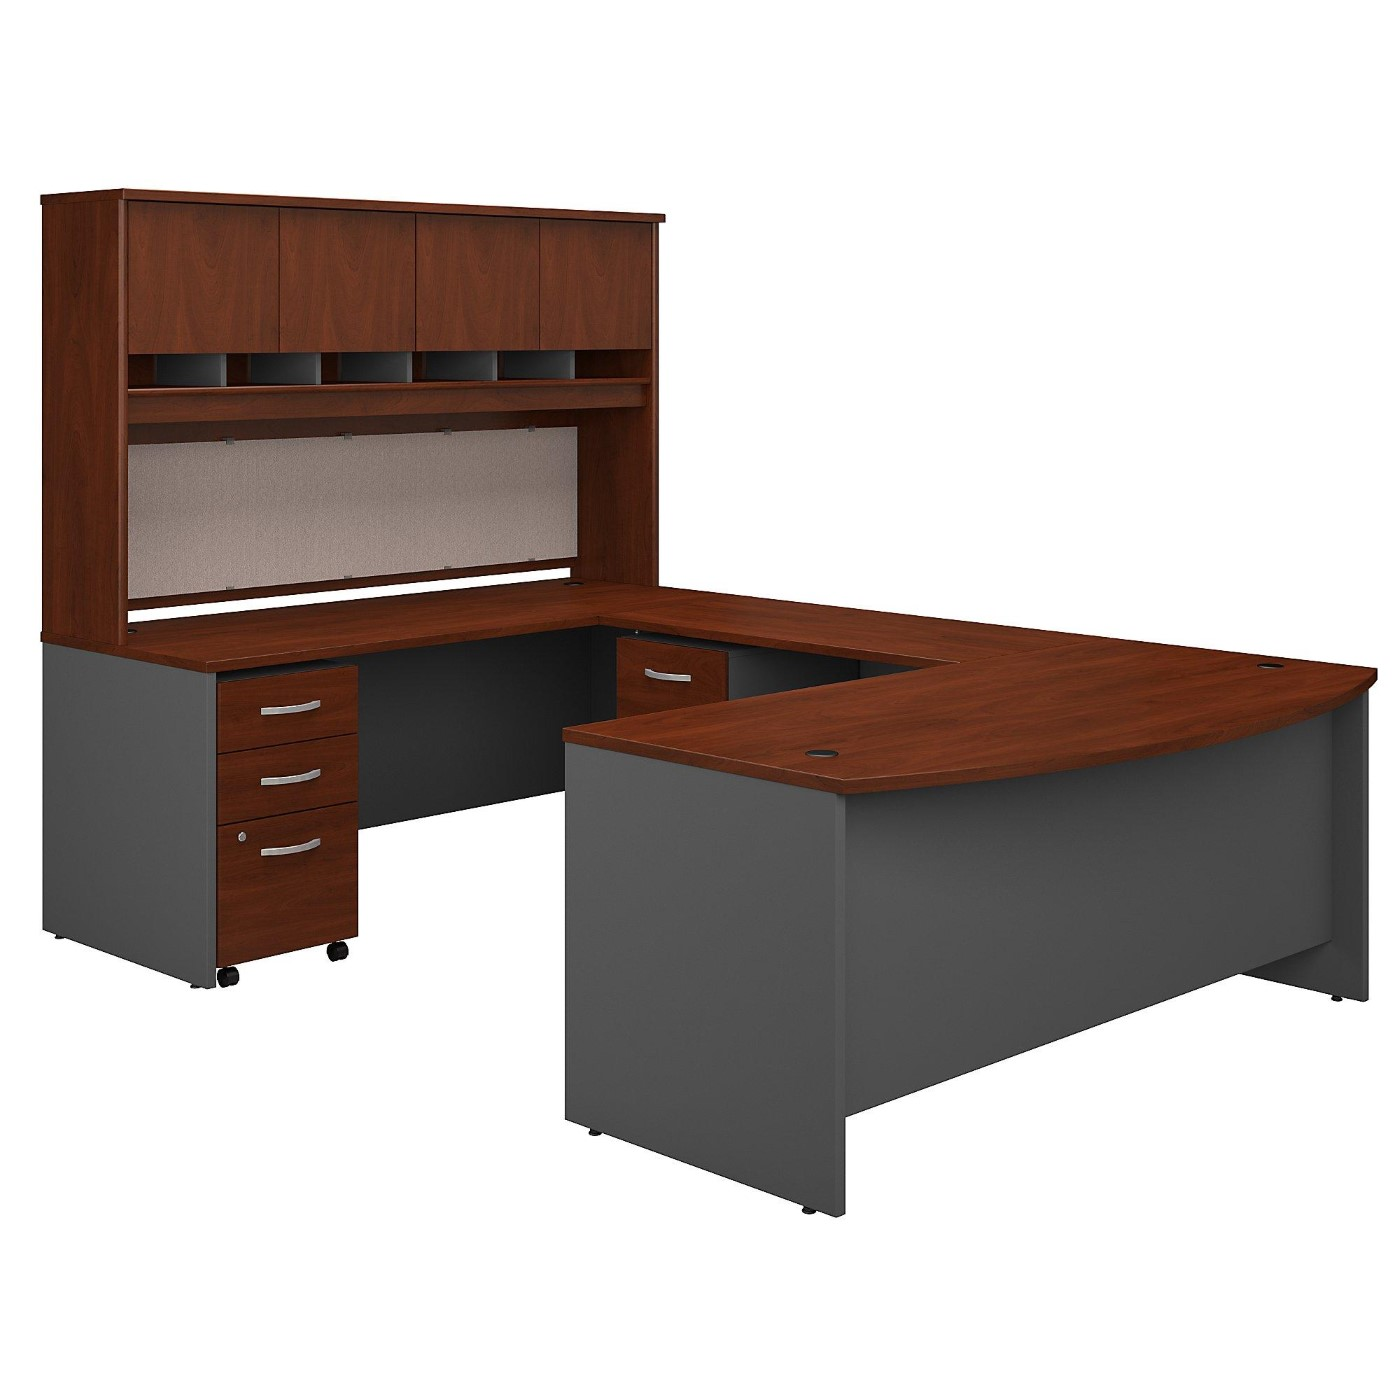 BUSH BUSINESS FURNITURE 72W BOW FRONT U SHAPED DESK WITH HUTCH AND STORAGE. FREE SHIPPING.